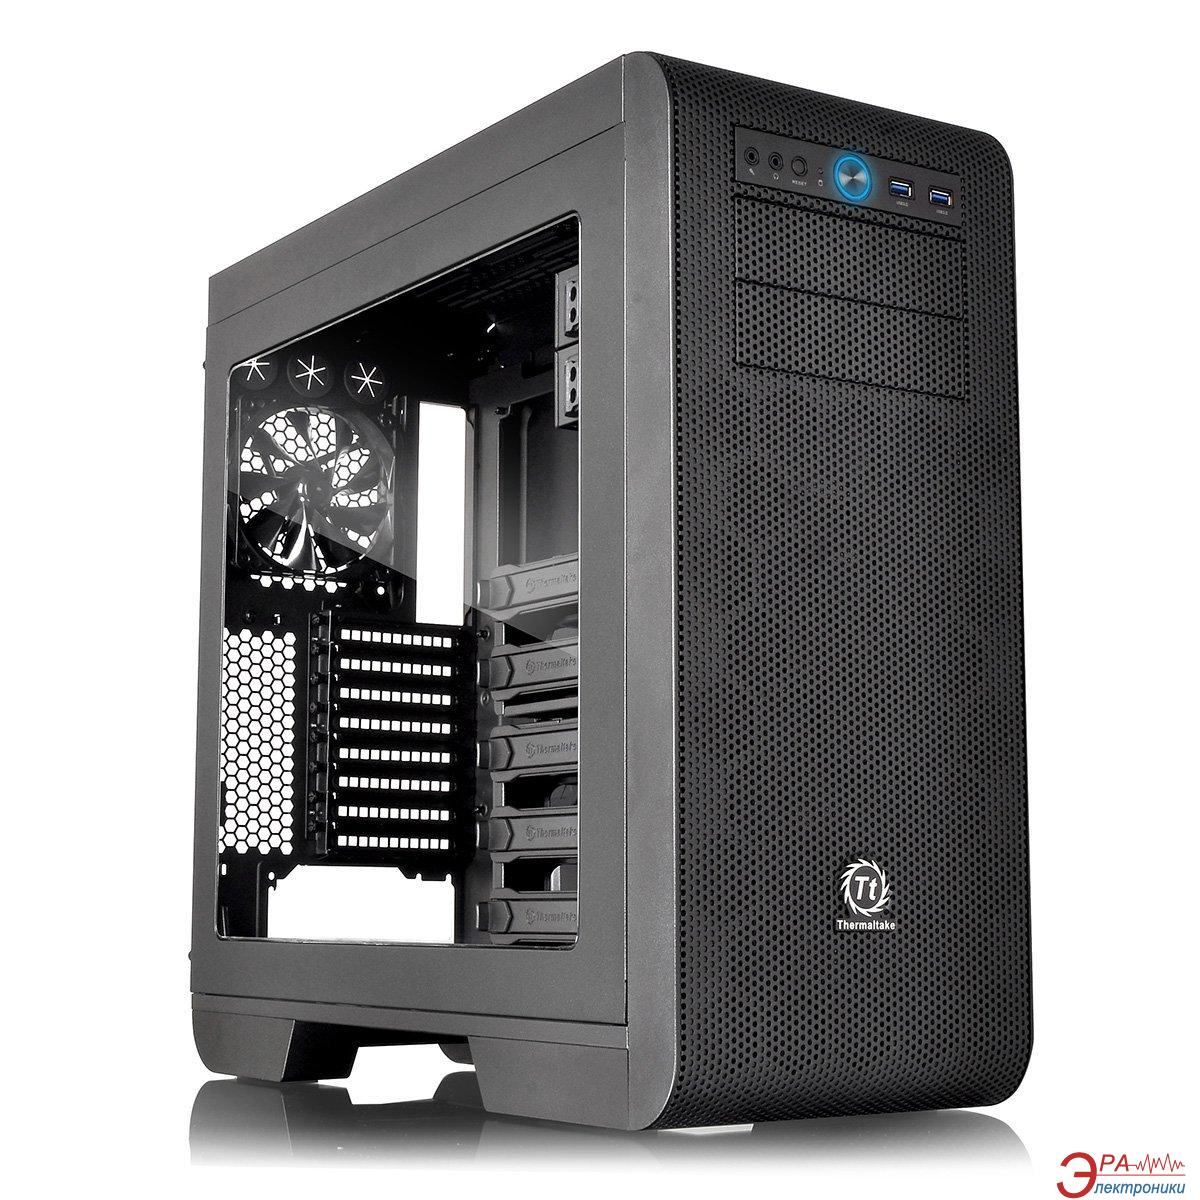 Корпус Thermaltake Core V51 (CA-1C6-00M1WN-00) Без БП